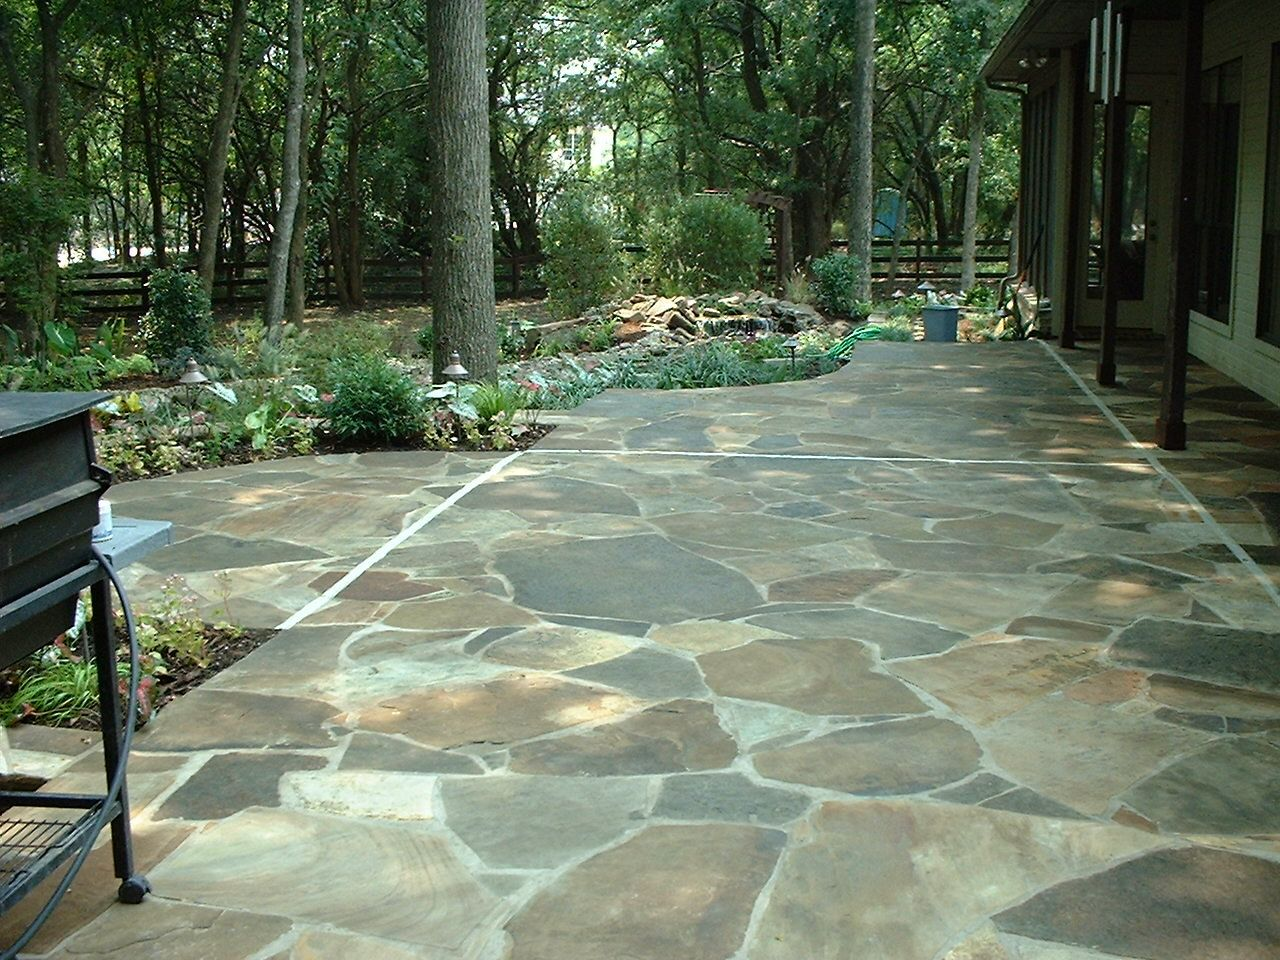 Stone Patio Ideas Backyard paver designs for backyard patio paver design ideas patio modern The Best Stone Patio Ideas